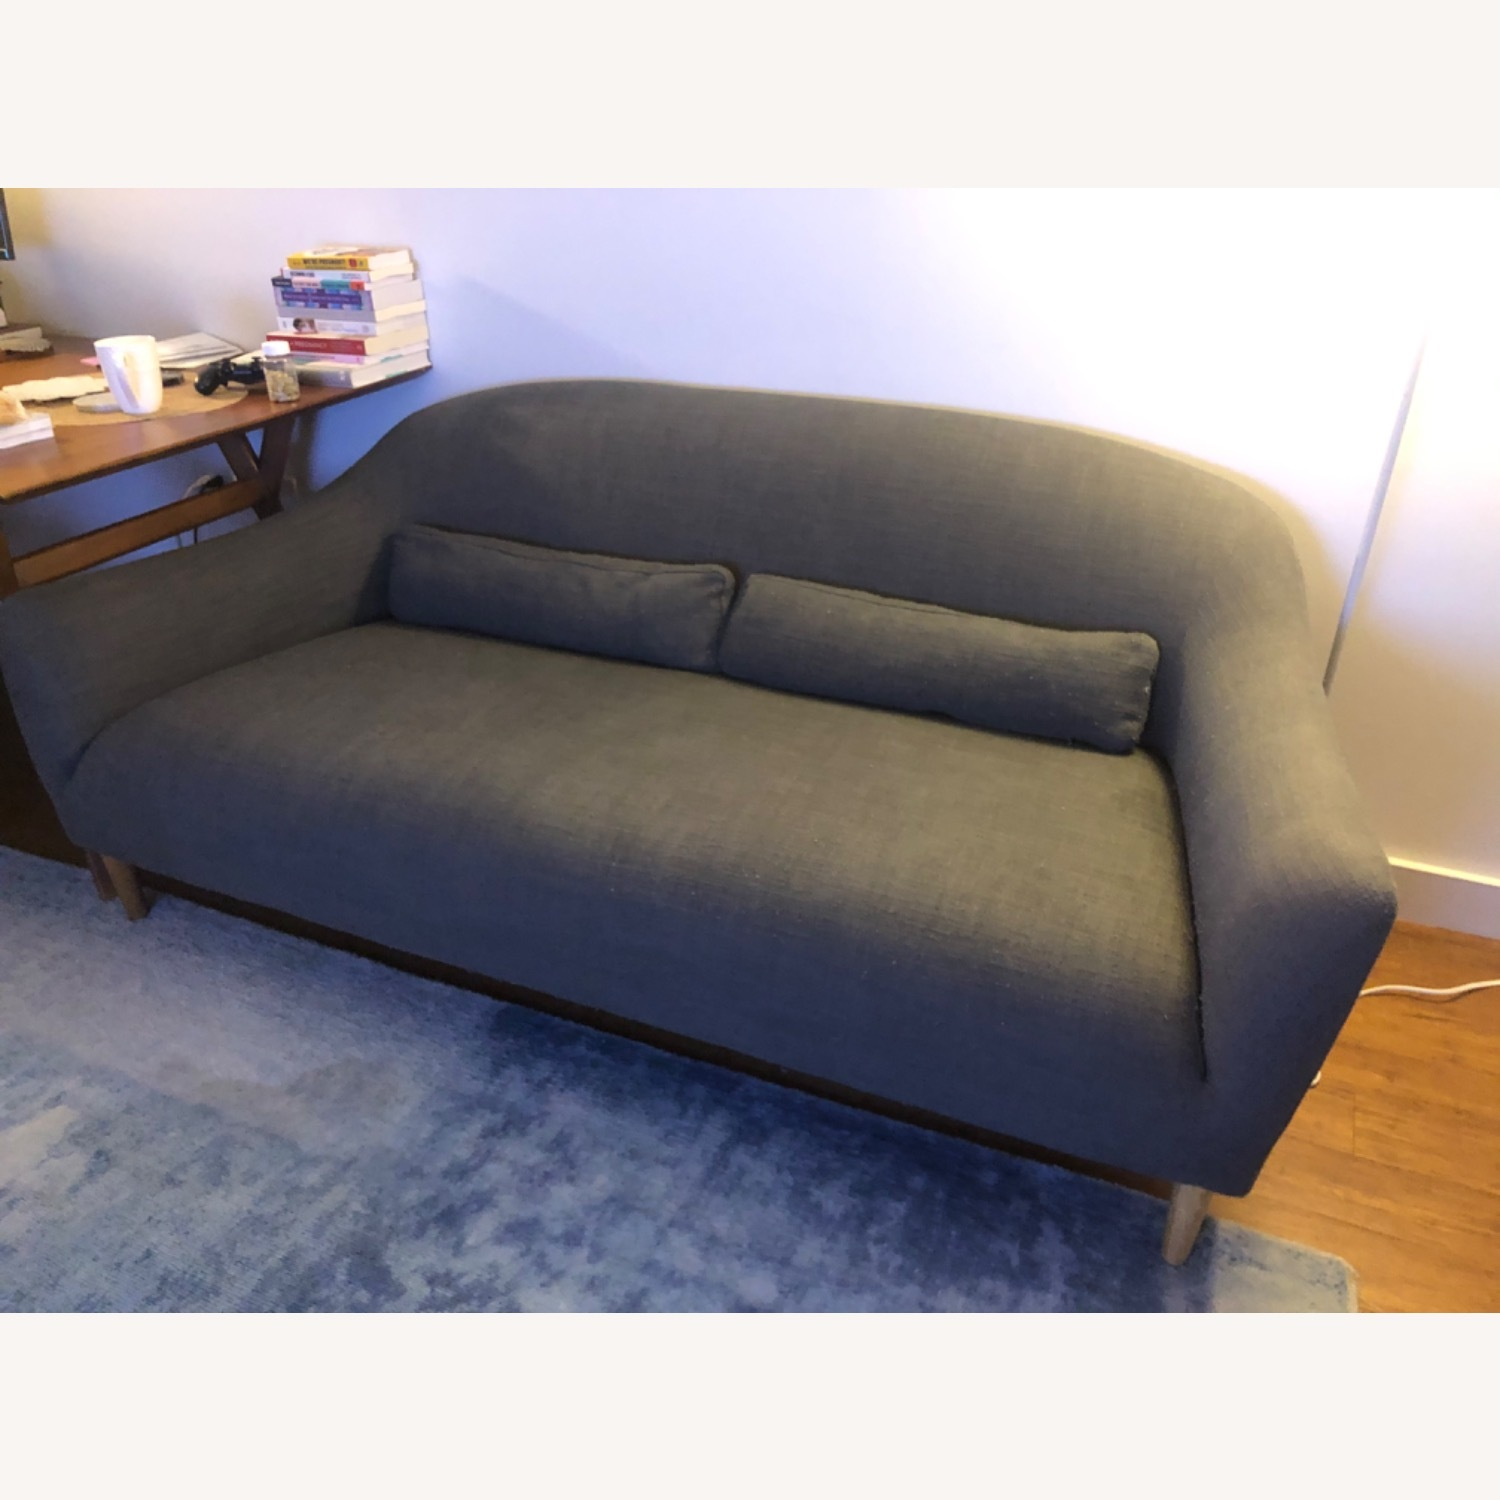 Crate and Barrel Pennie Sofa - image-2